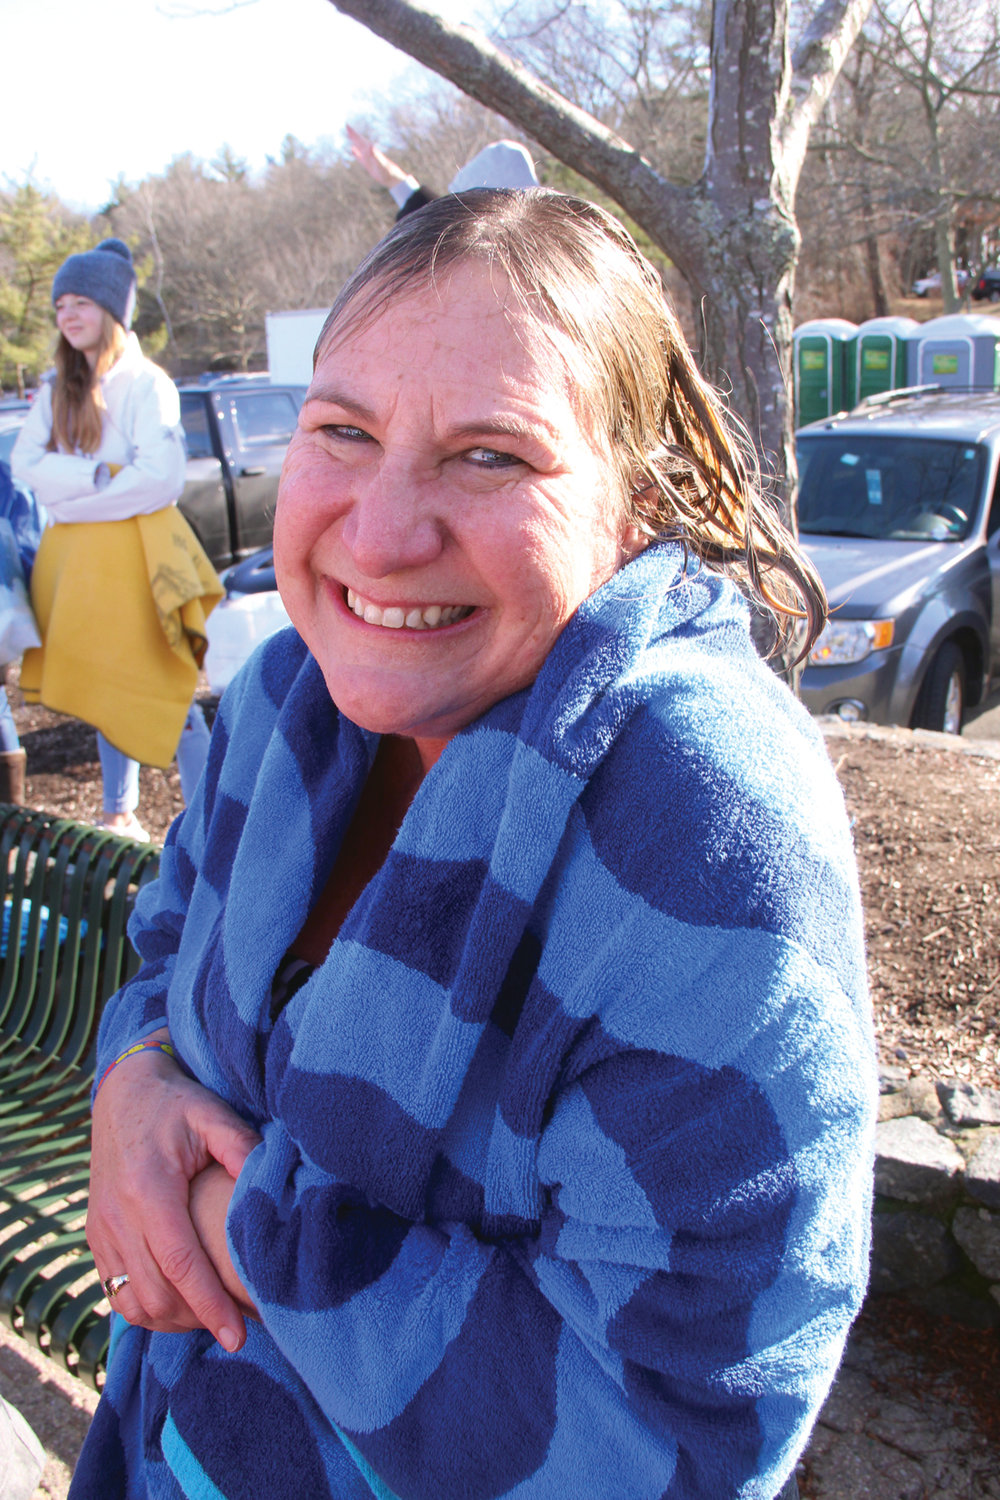 A COOL SMILE: A wet Julie Peterson quickly wrapped herself in a towel after taking the Frozen Clam Dip.